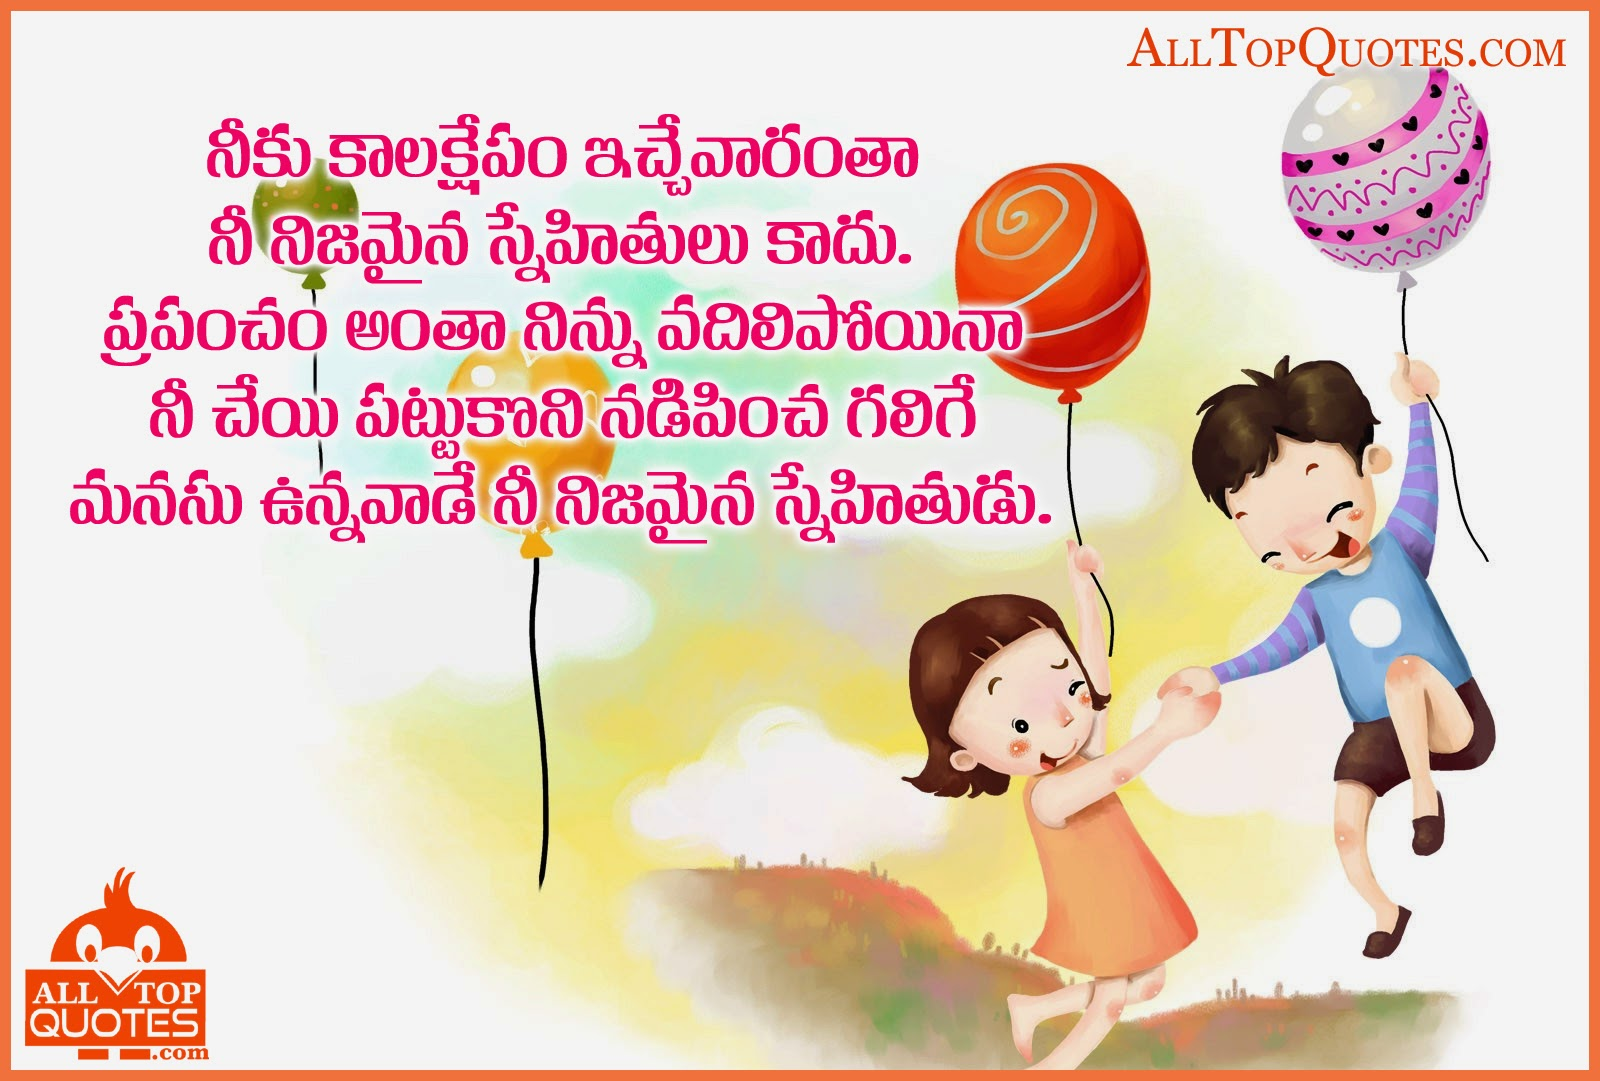 Telugu True Friendship Quotation | All Top Quotes | Telugu Quotes ...